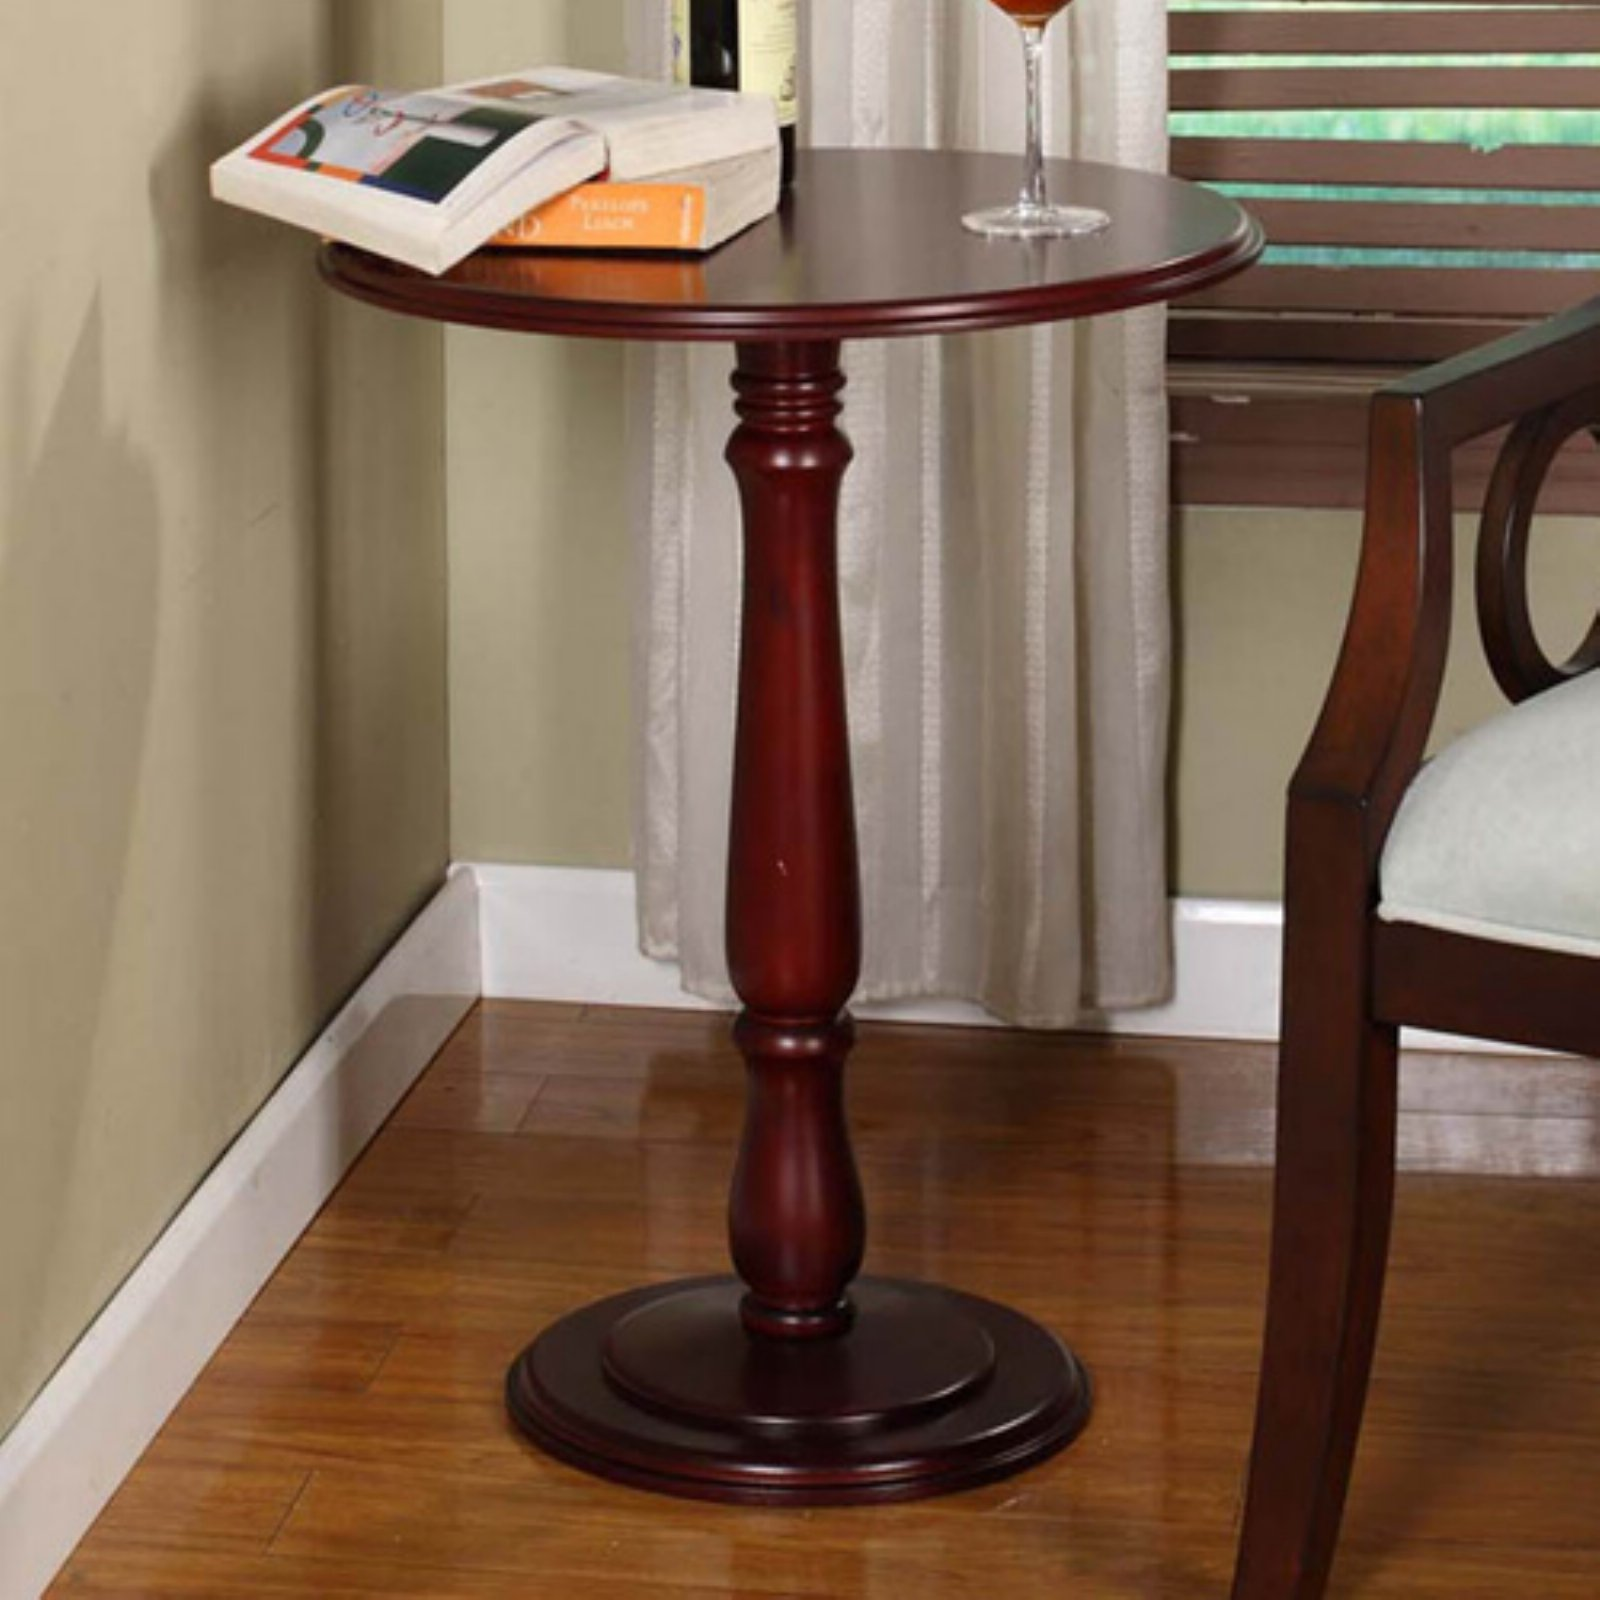 K & B Furniture Plant Stand - Cherry